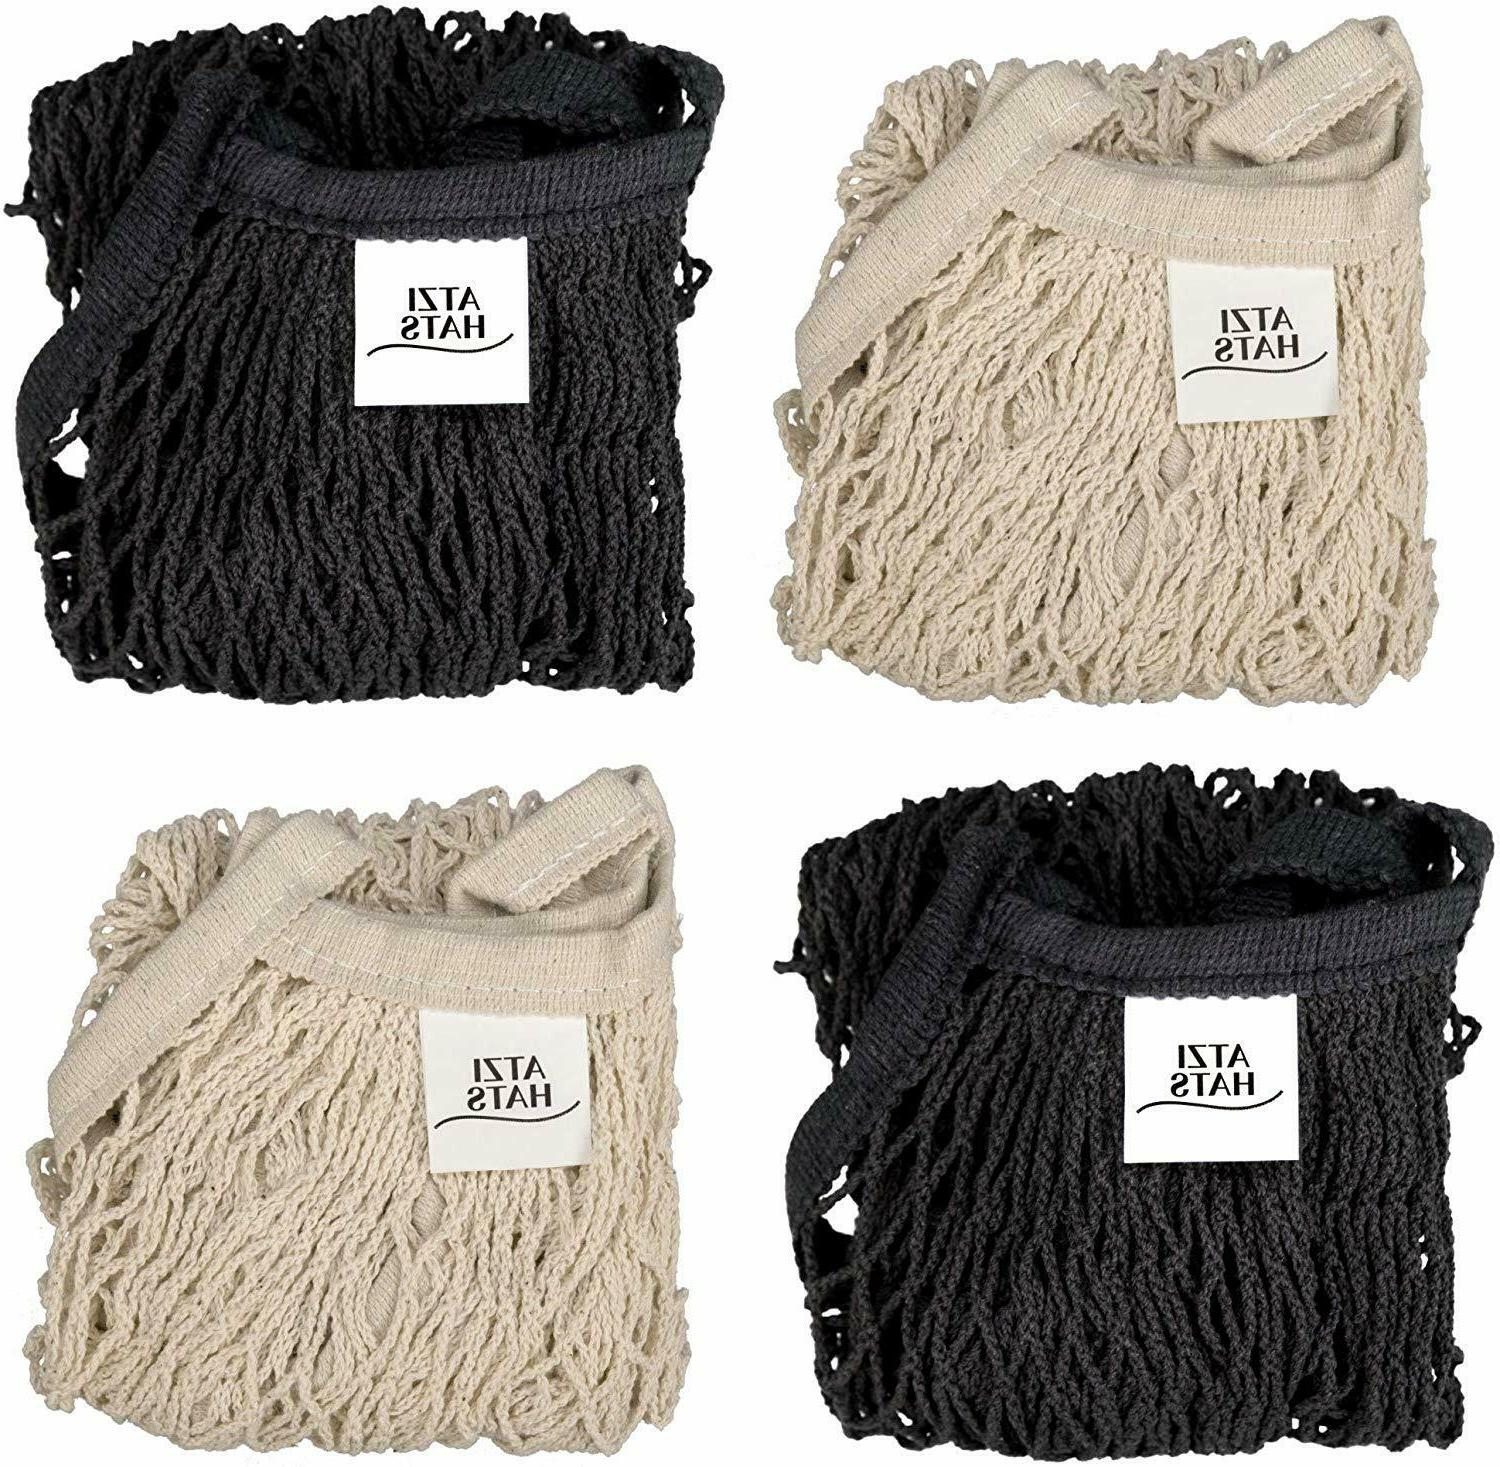 Reusable Bags Net Mesh Pack Gifts Mom